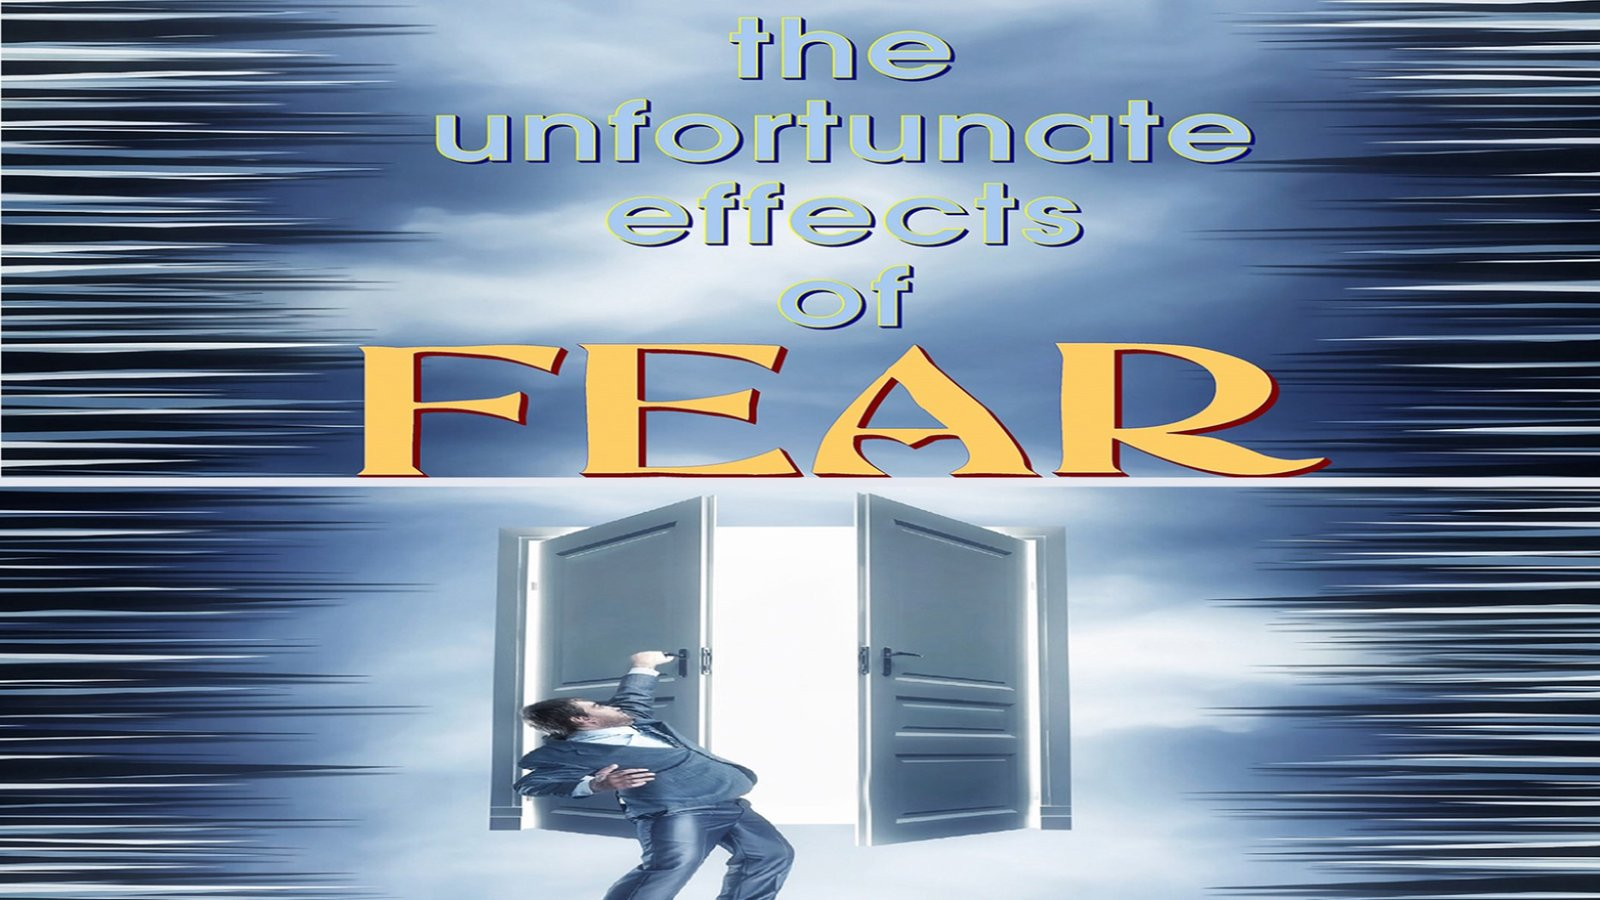 Employee Training: The Effect of Fear